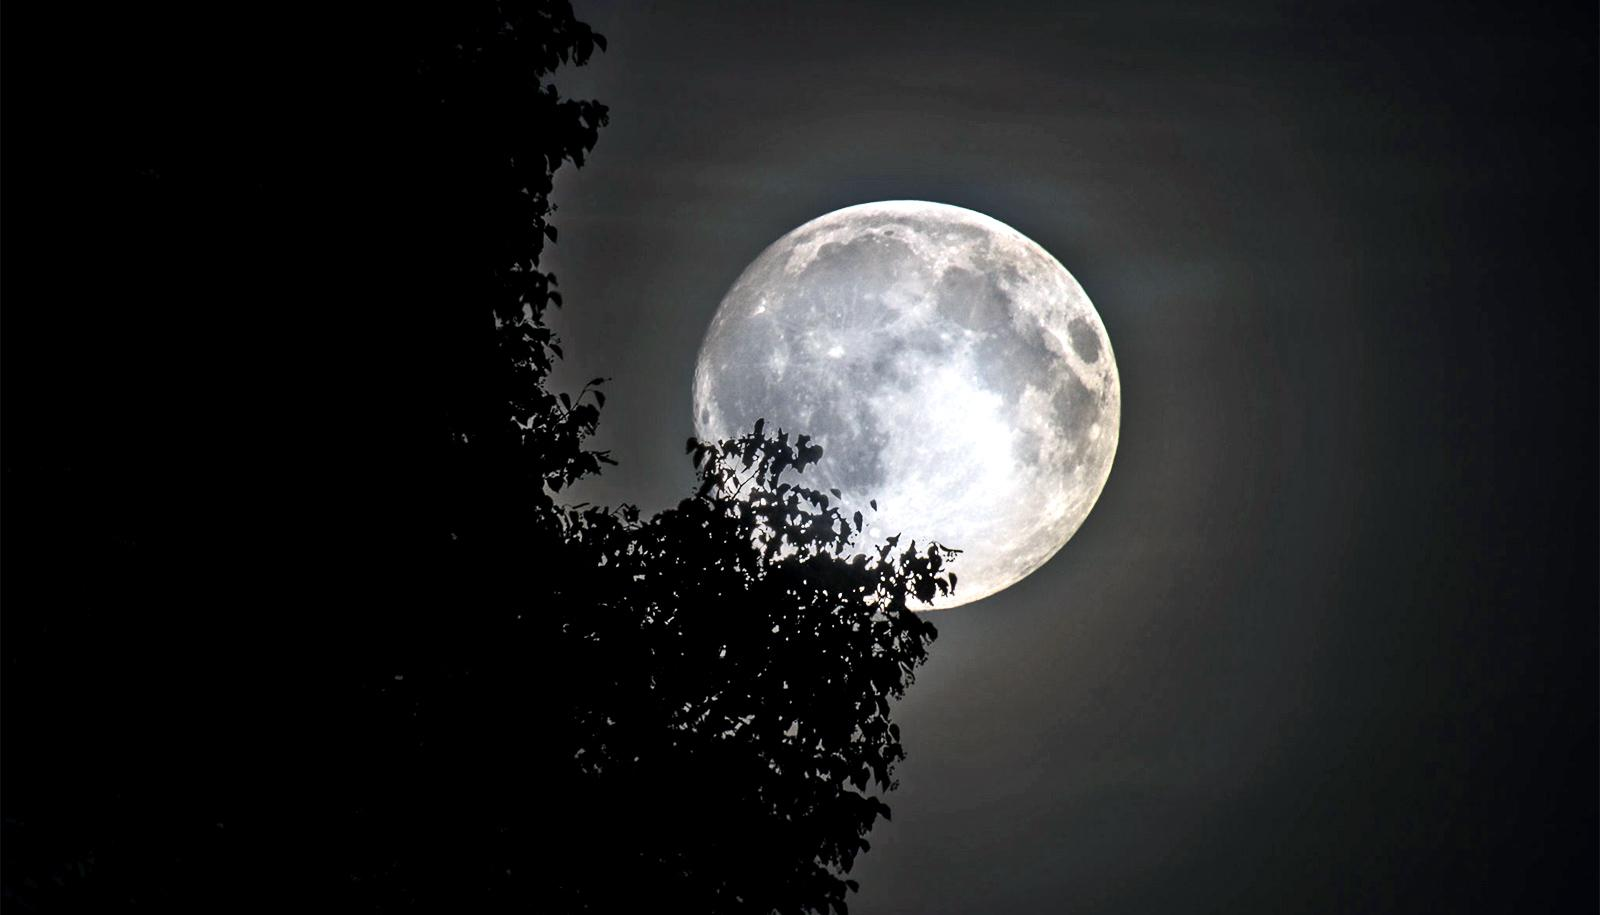 moon behind tree (siderophile-elements concept)